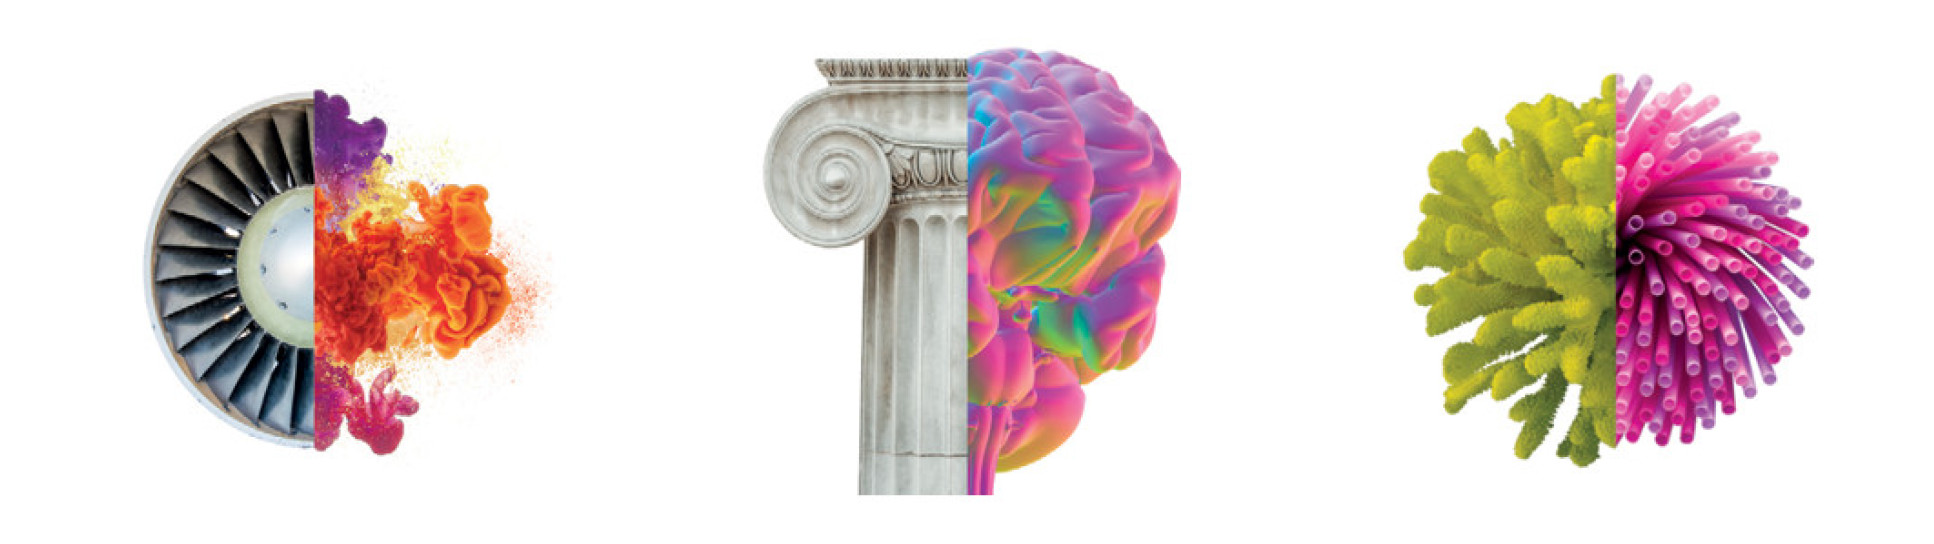 3 split images: jet propeller and coloured chemicals, column and brain, mineral and coral